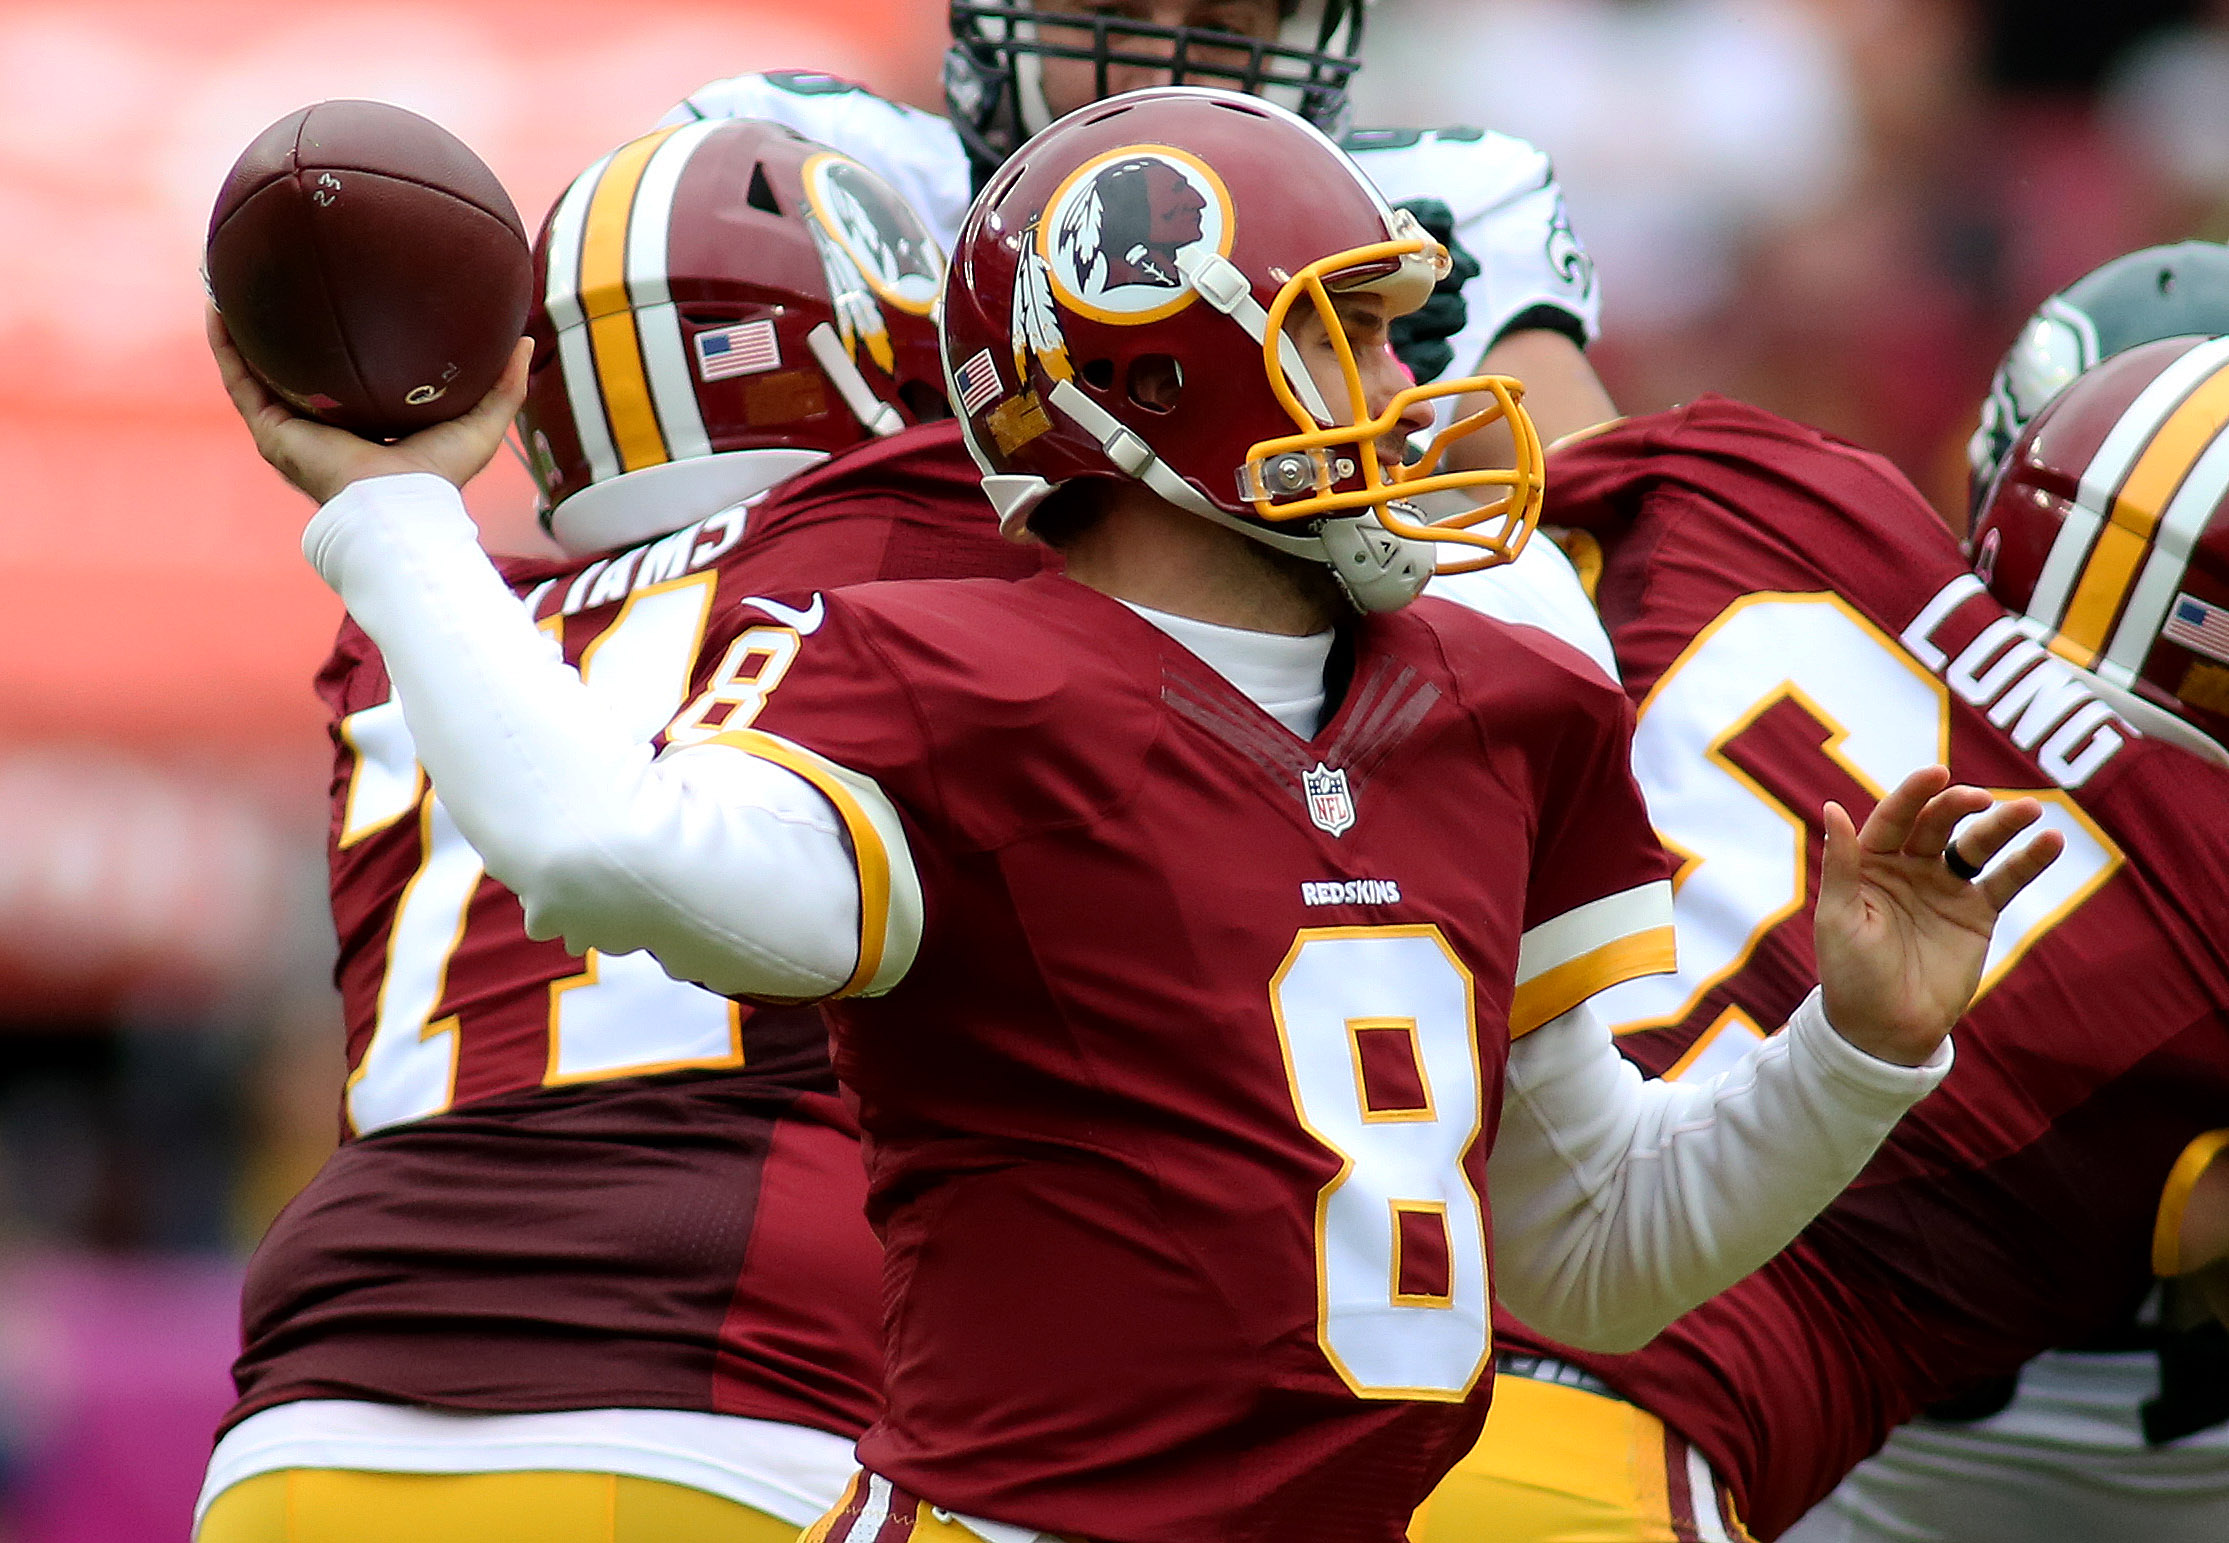 04 October, 2015: during a match between the Washington Redskins and the Philadelphia Eagles at FedEx Field in Landover, Maryland. (Photo By: Daniel Kucin Jr./Icon Sportswire)